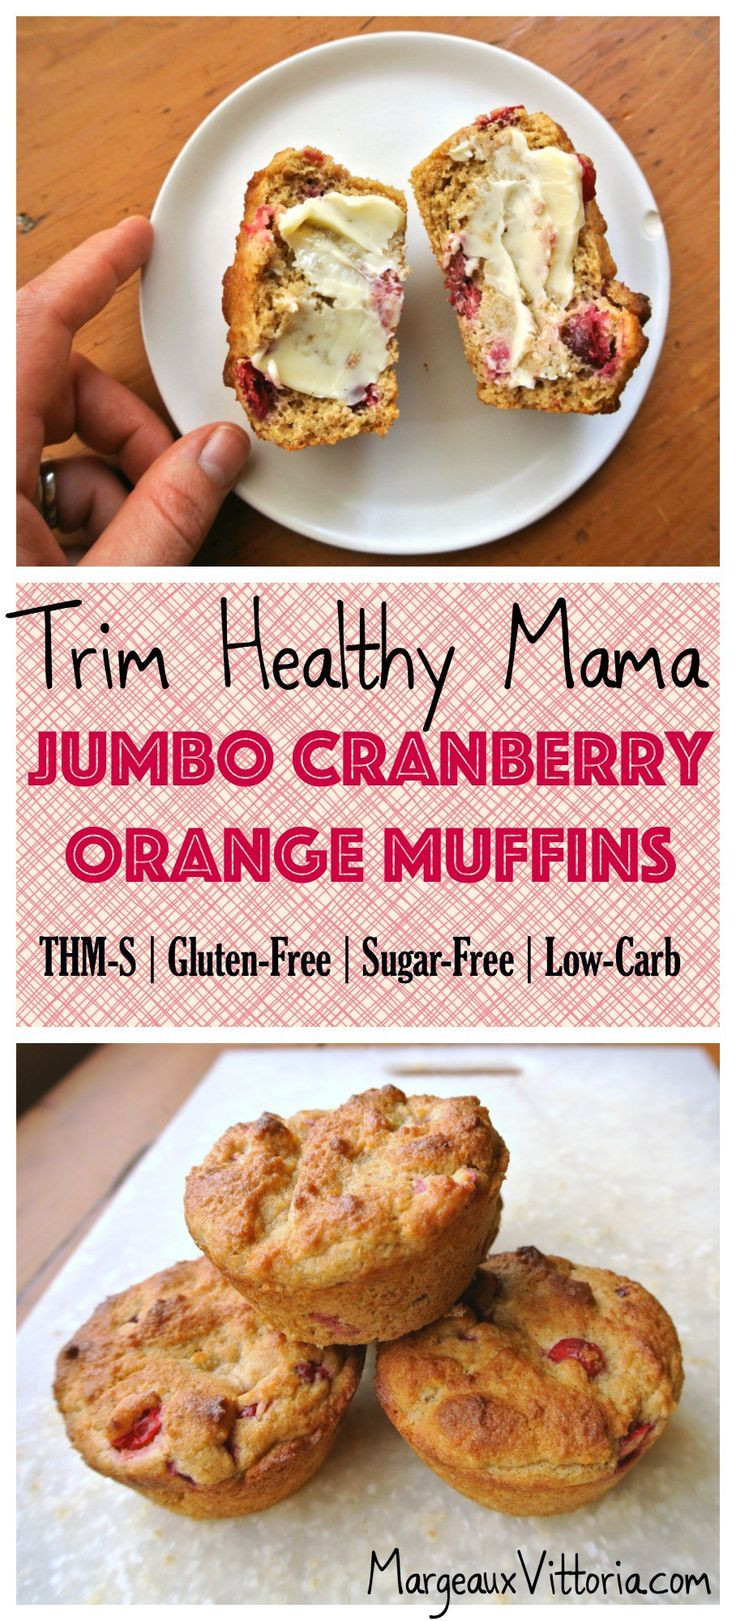 Trim Healthy Mama Recipes Breakfast  25 best ideas about Low carb fast food on Pinterest